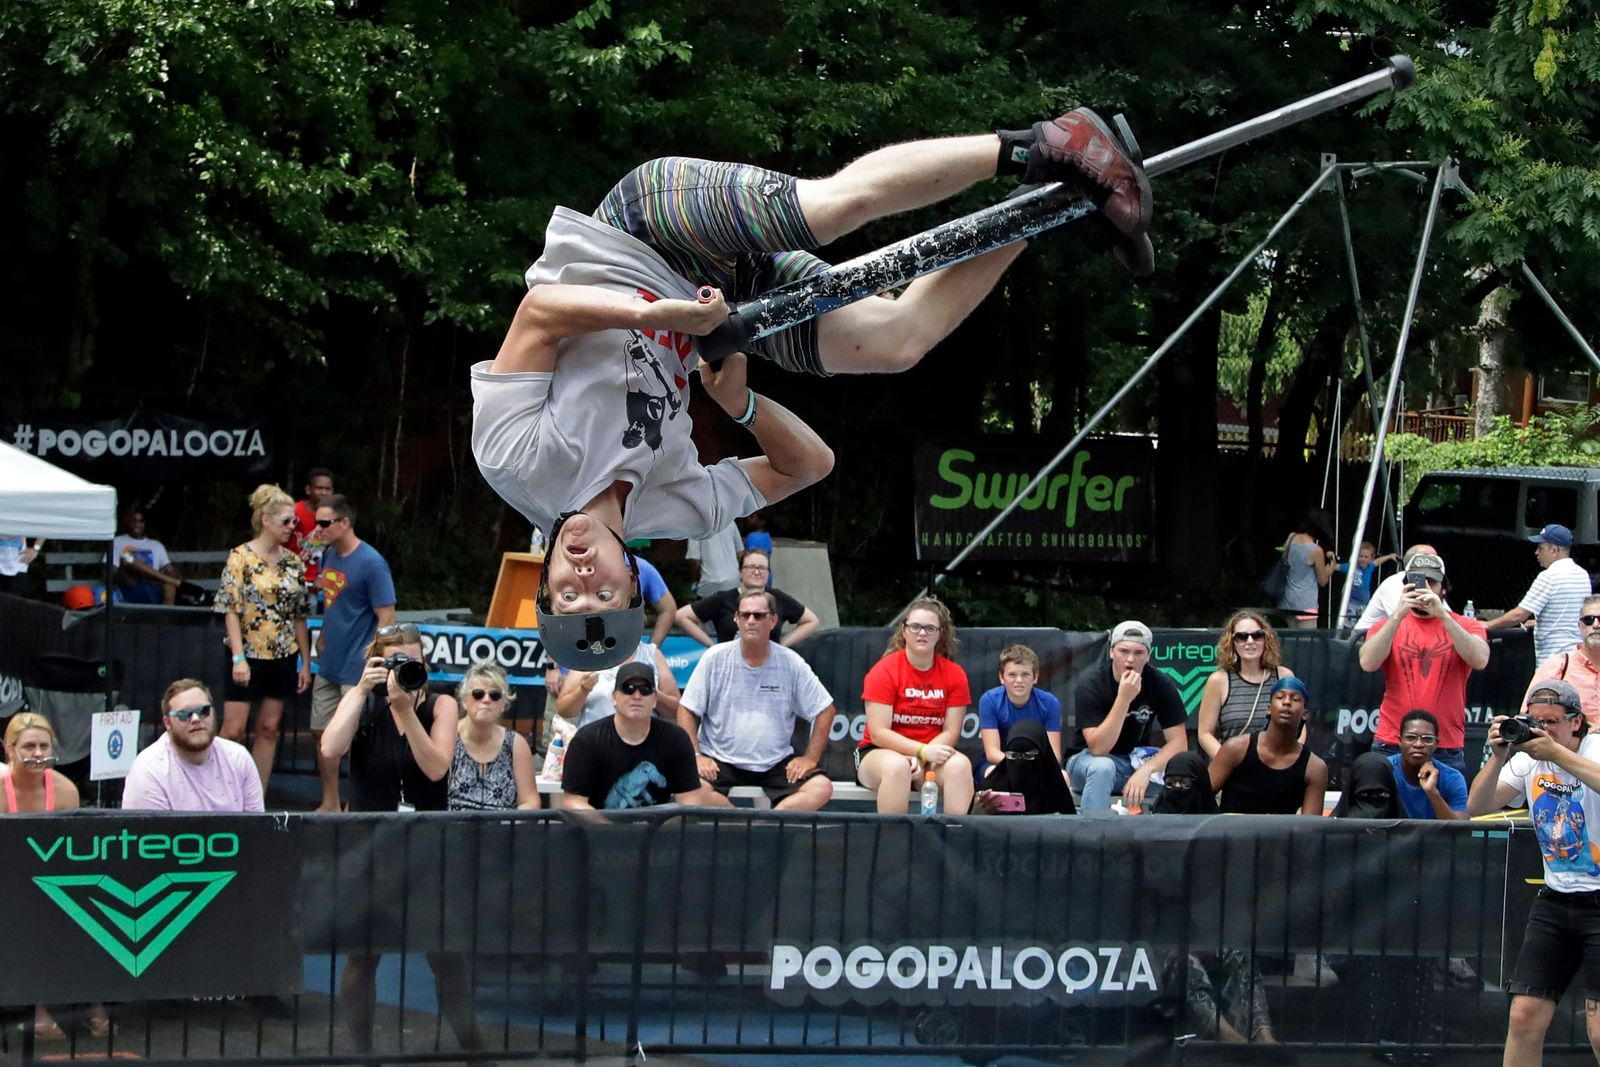 Biff Hutchison, of Burley, Idaho, performs during Pogopalooza, The World Championships of Pogo in Wilkinsburg, Pa., Saturday, July 20, 2019. (AP Photo/Gene J. Puskar)